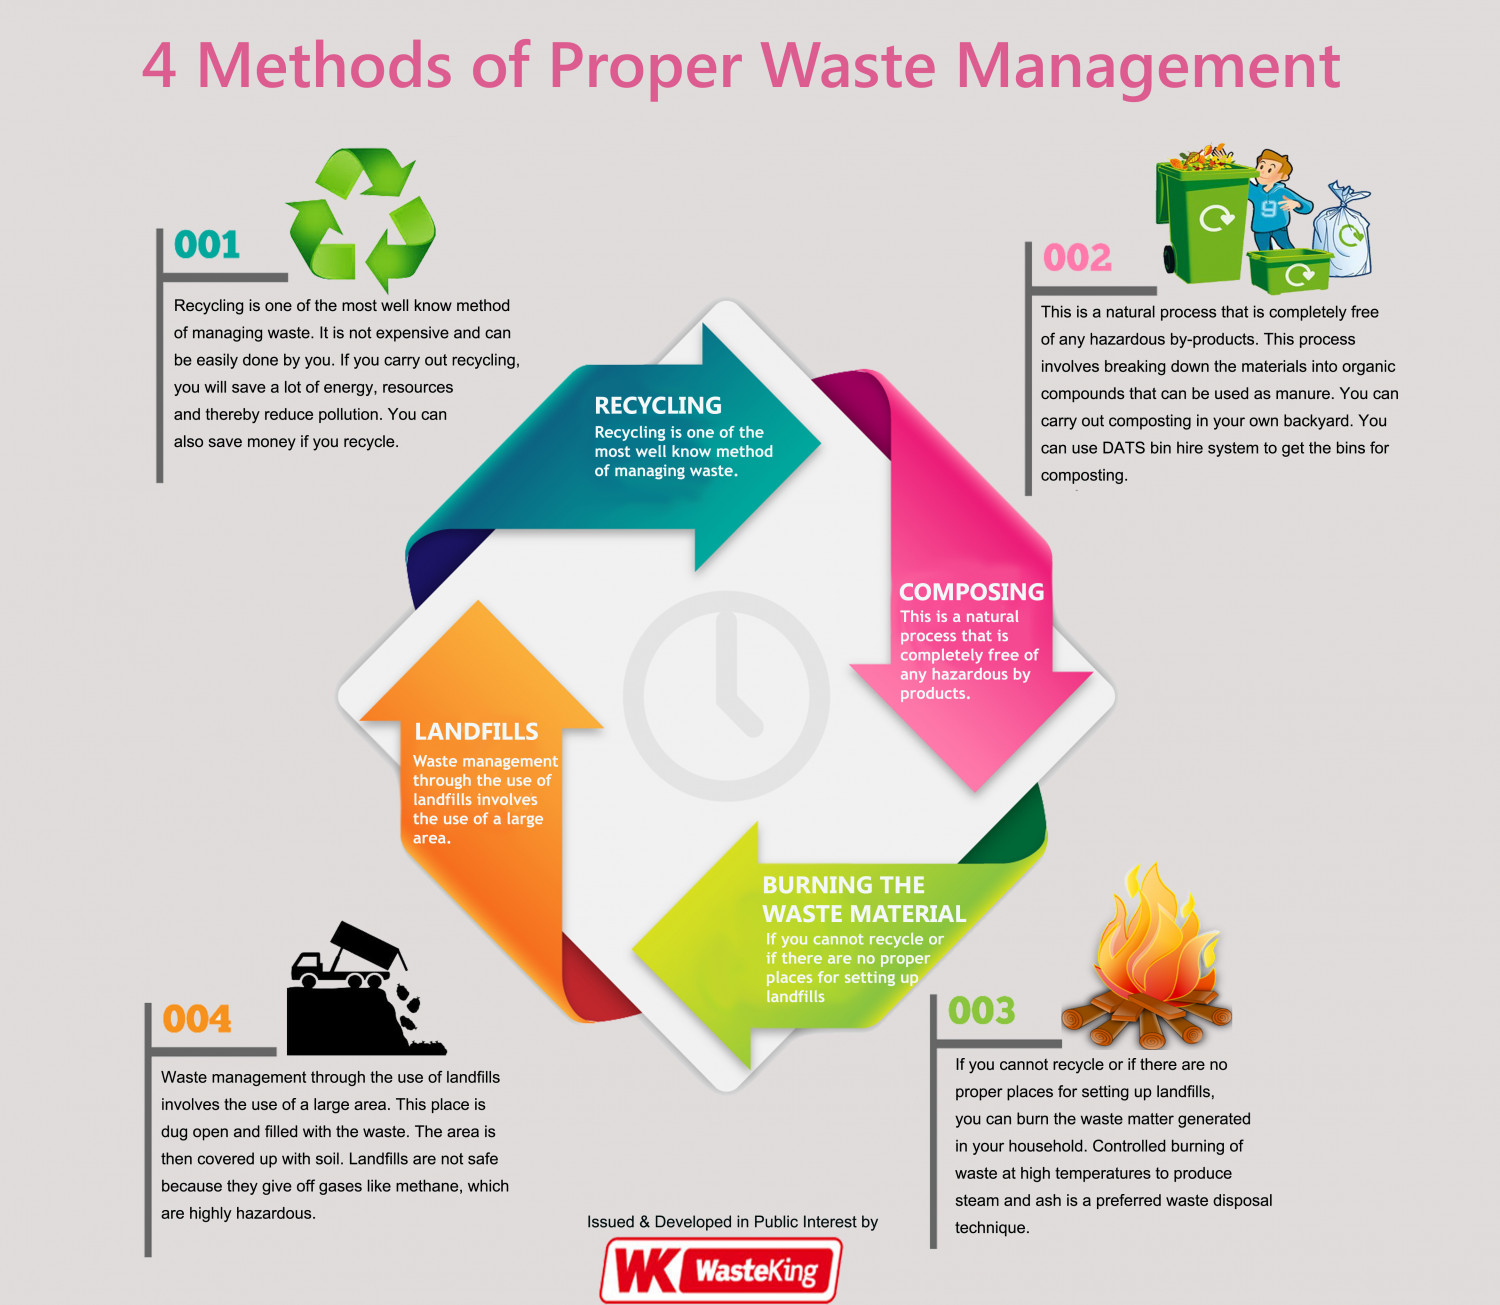 4 Methods Of Proper Waste Management Visual Ly